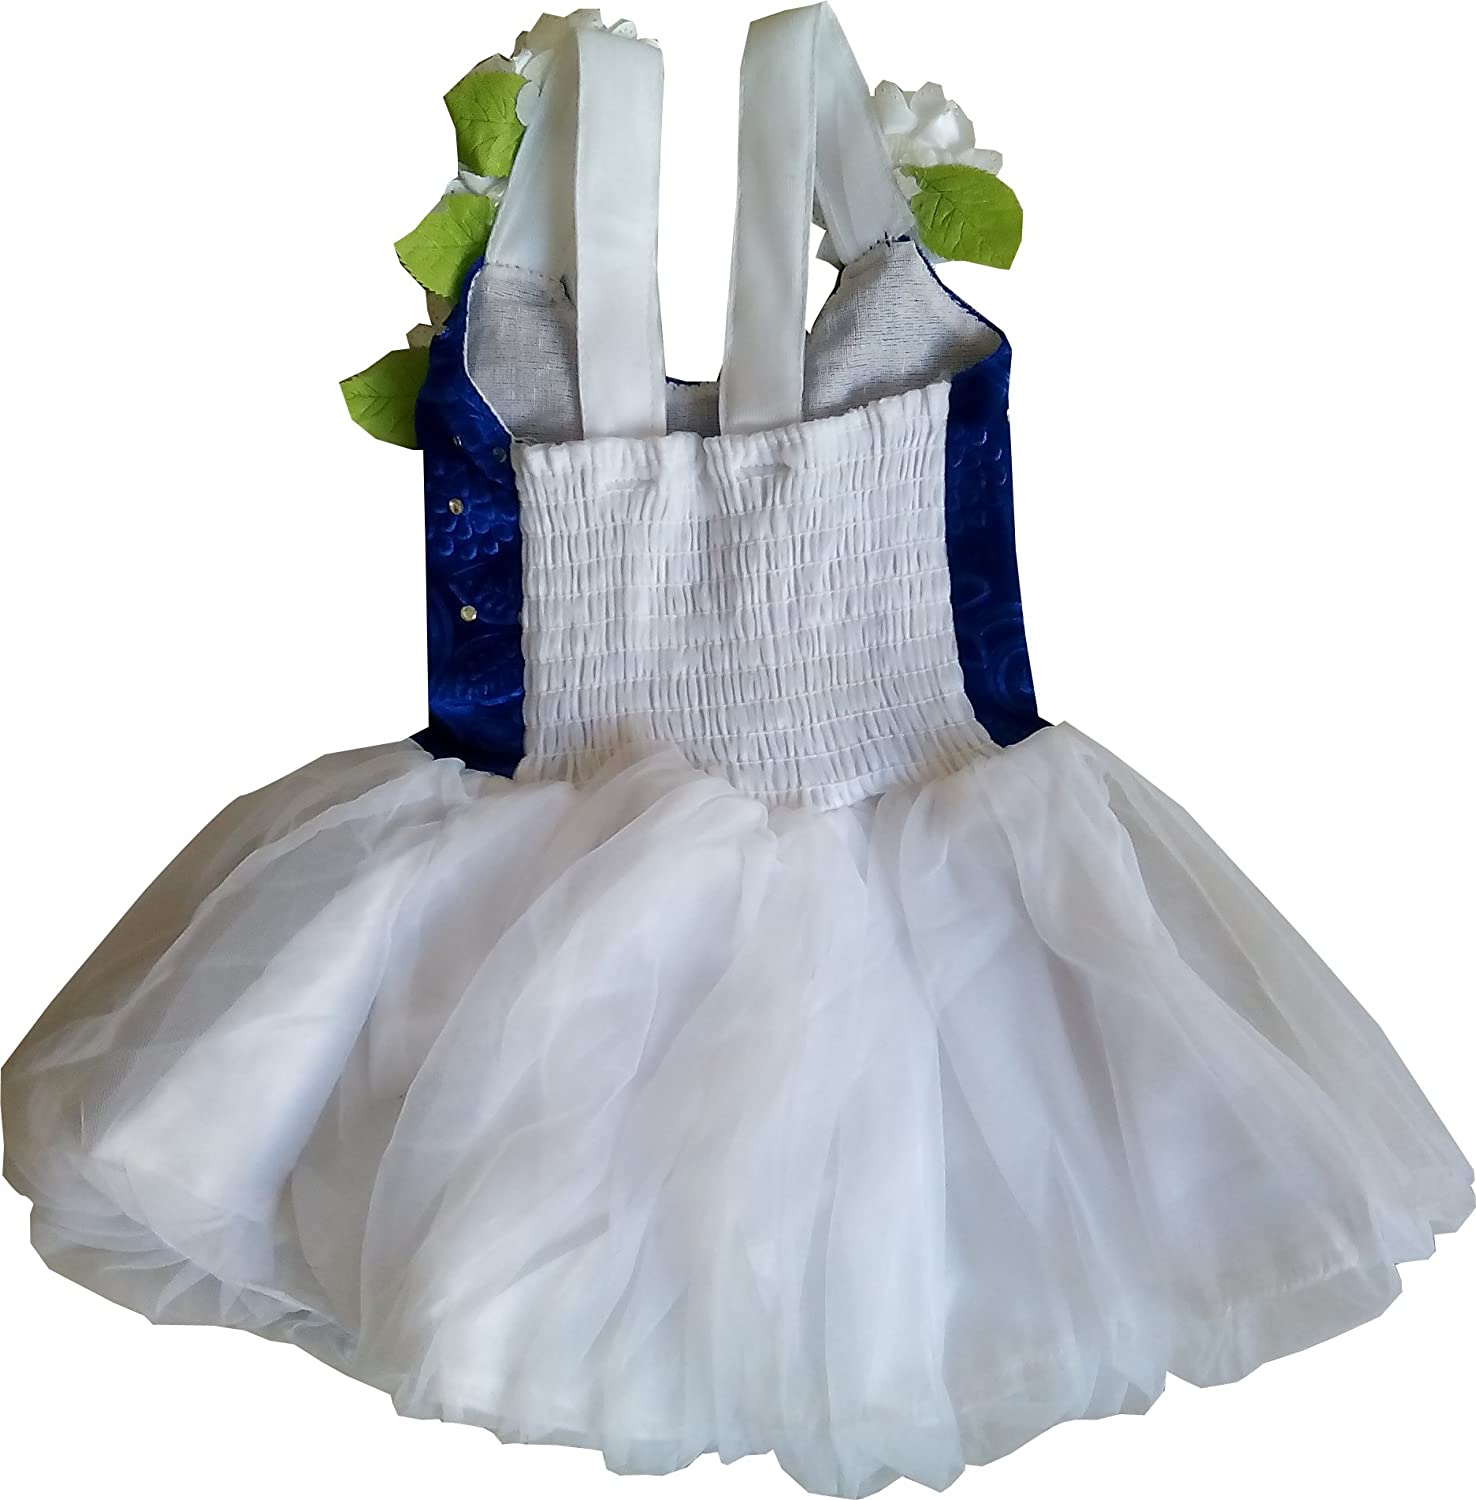 Easy Cute Fashion Baby Girls Frock Princess Party Flower Dress